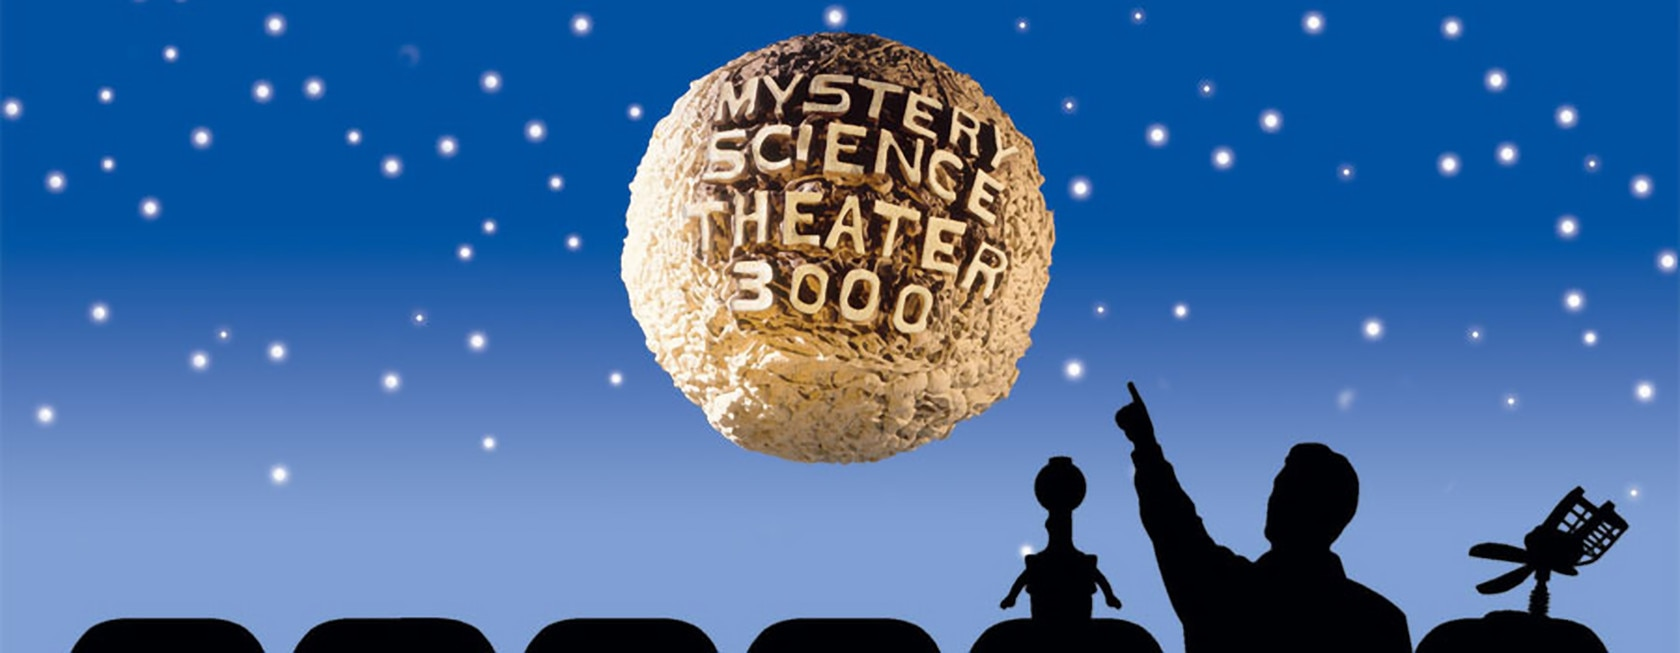 mst3k - Lost Episodes of Mystery Science Theater 3000 Located!